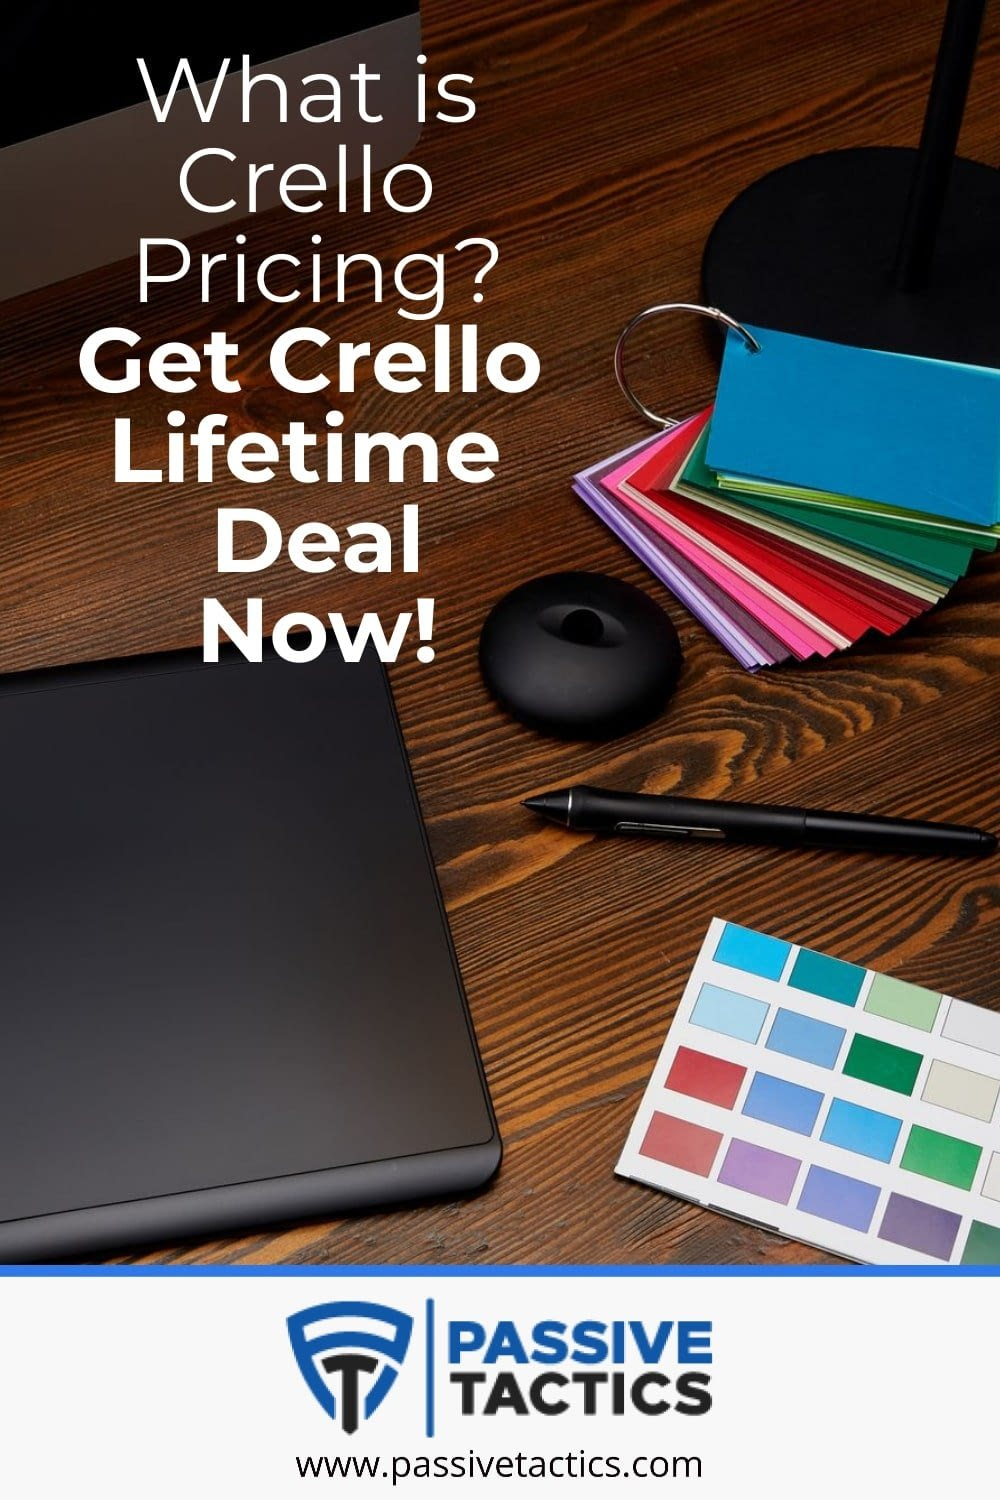 What is Crello? Limited time offer - Crello Lifetime Deal